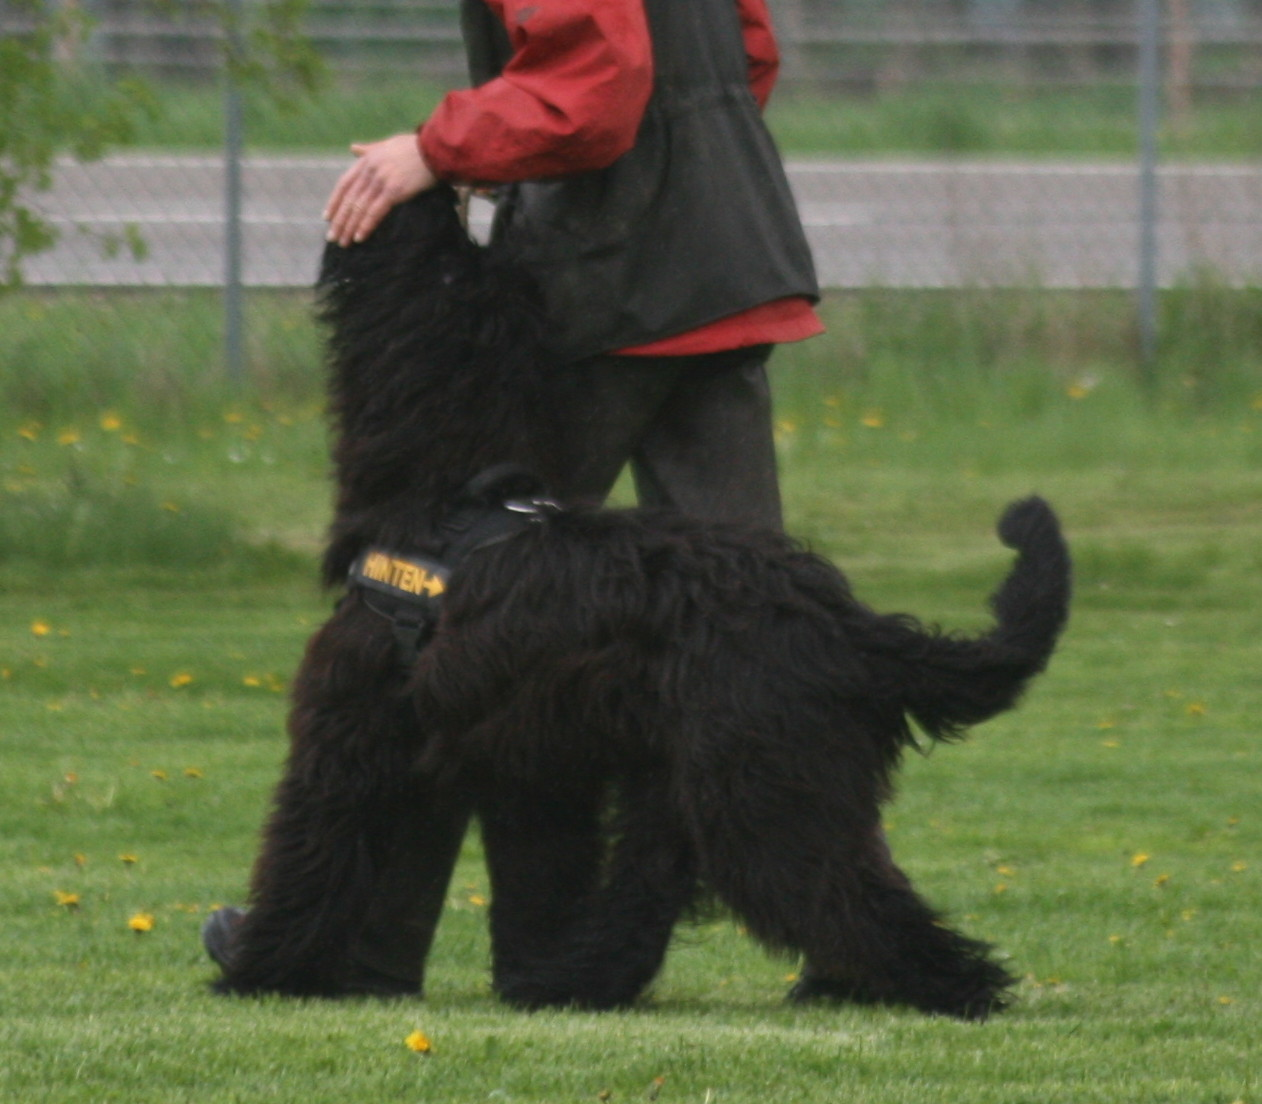 April 2013, Training Obedience